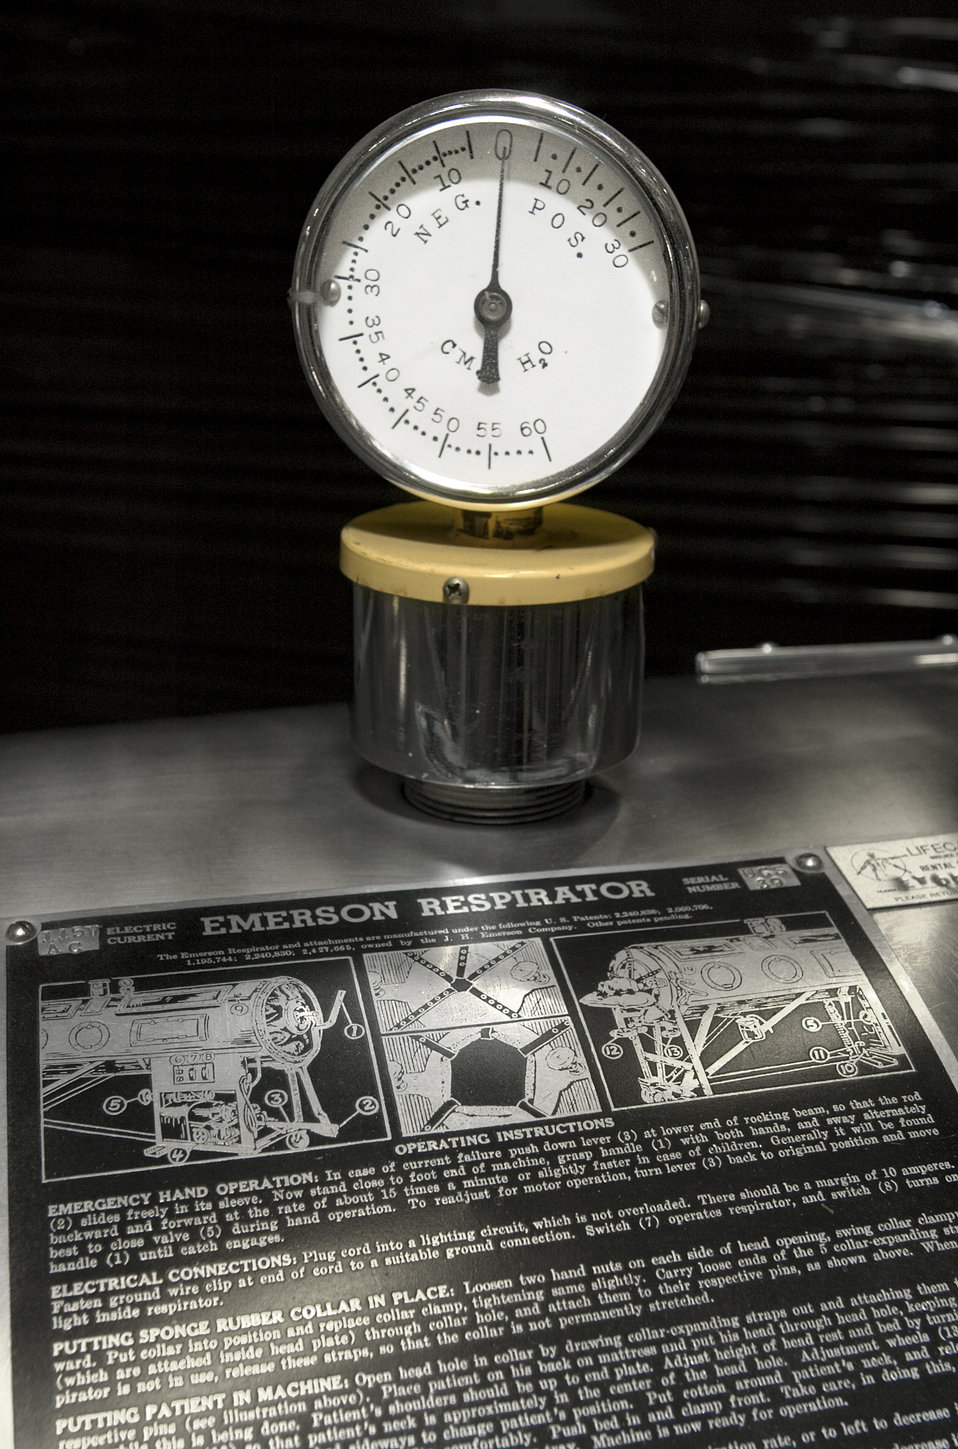 This photograph depicts the pressure gauge that sits atop of an Emerson model mechanical ventilation system, or iron lung.